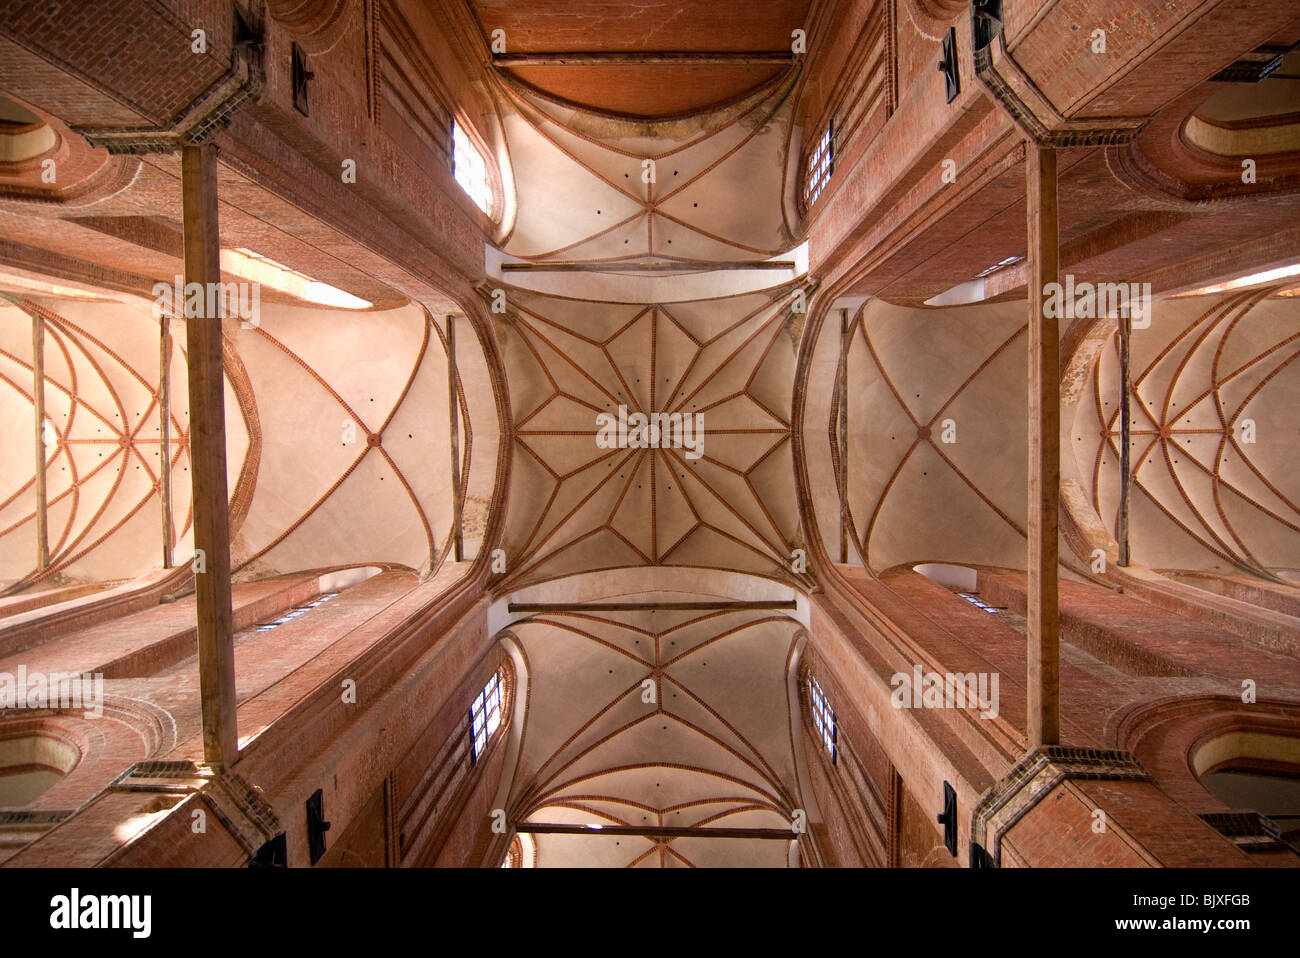 Vaulted ceiling of St. George´s Church in Wismar, Mecklenburg-Western Pomerania, Germany. Stock Photo